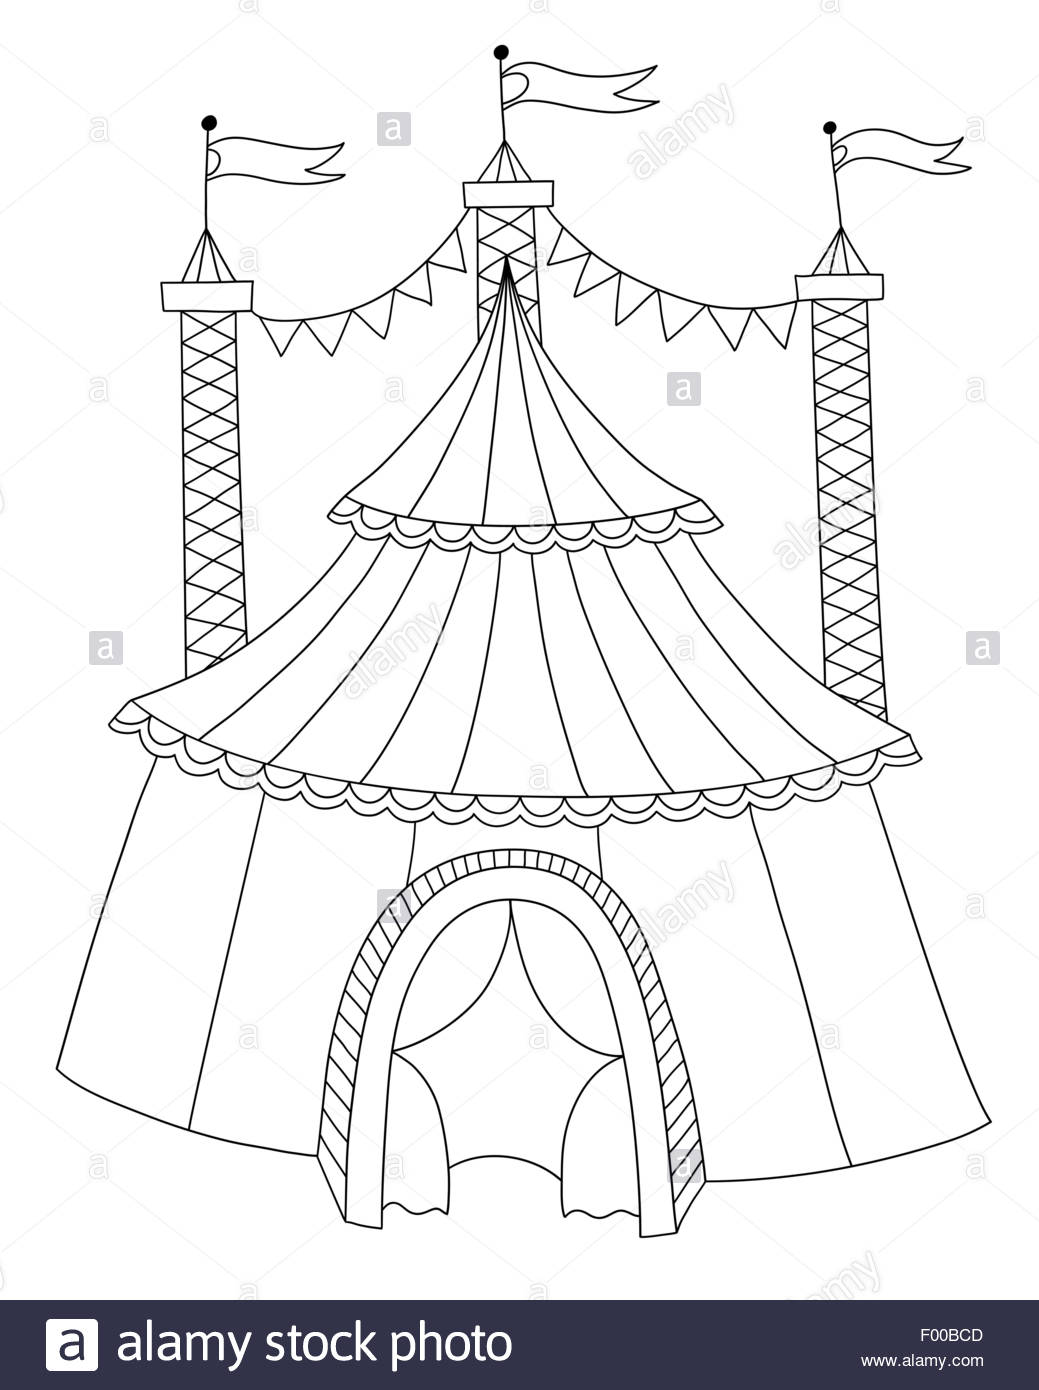 1039x1390 Black And White Line Art Illustration Of Circus Tent Stock Vector